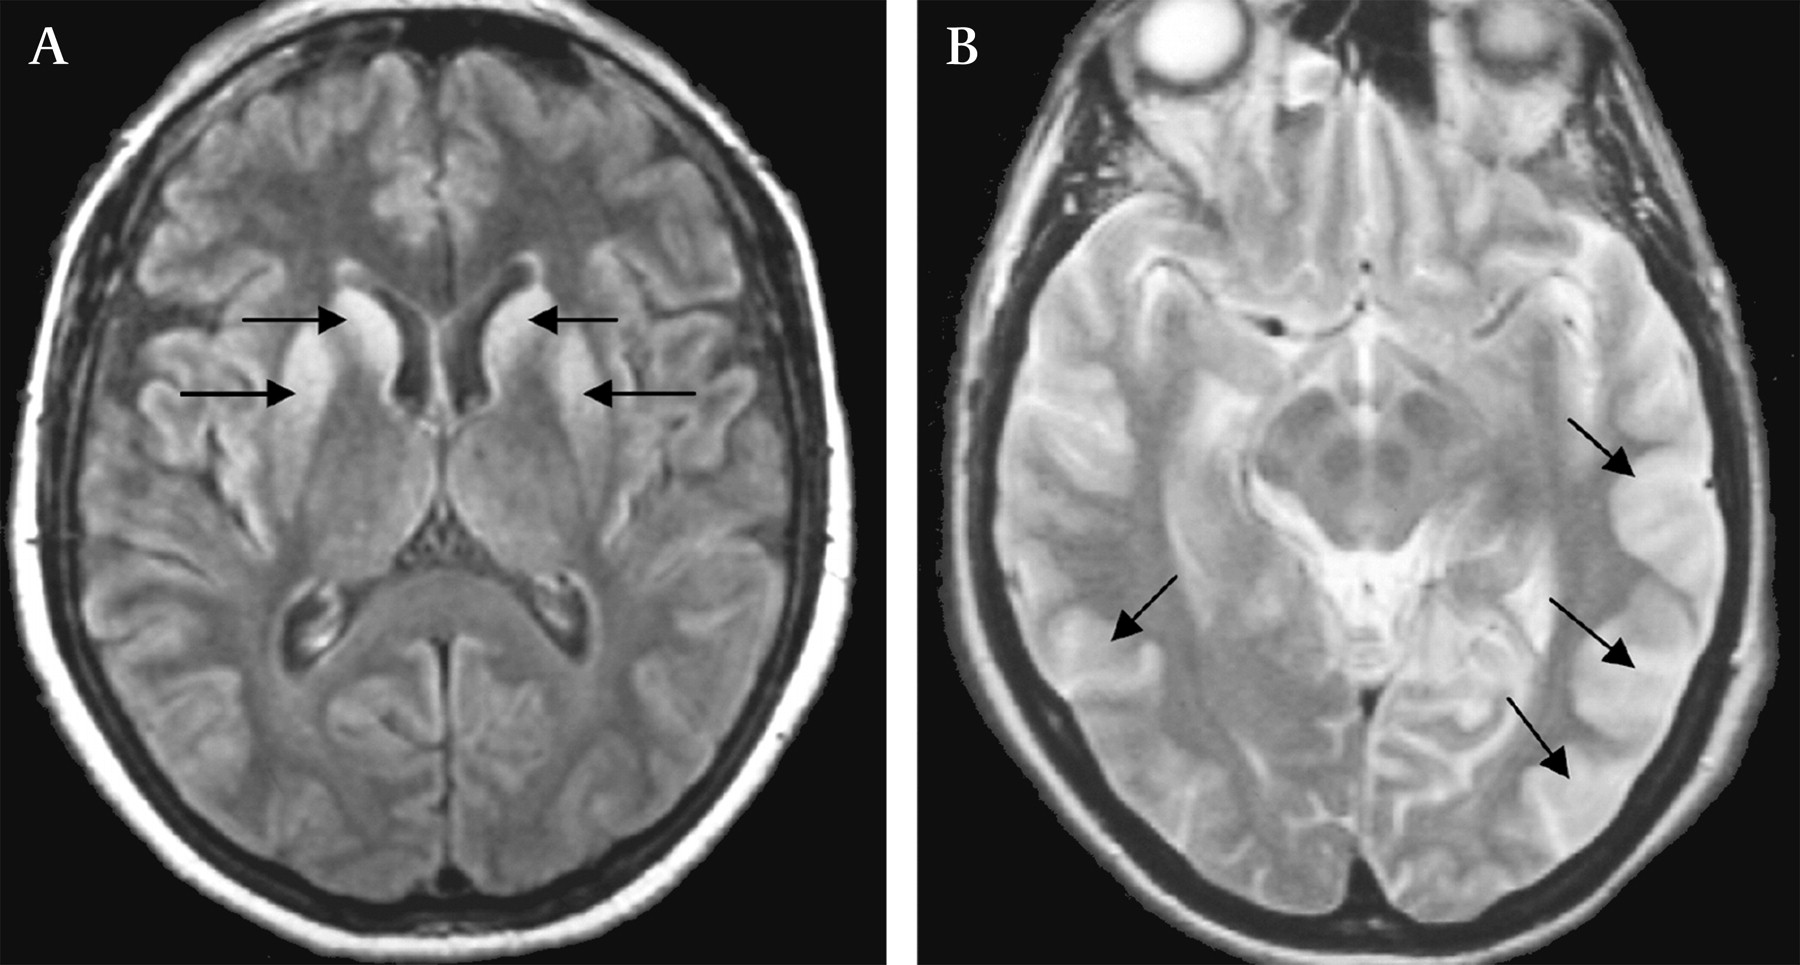 CreutzfeldtJacob disease mimics or how to sort out the subacute encephalopathy patient